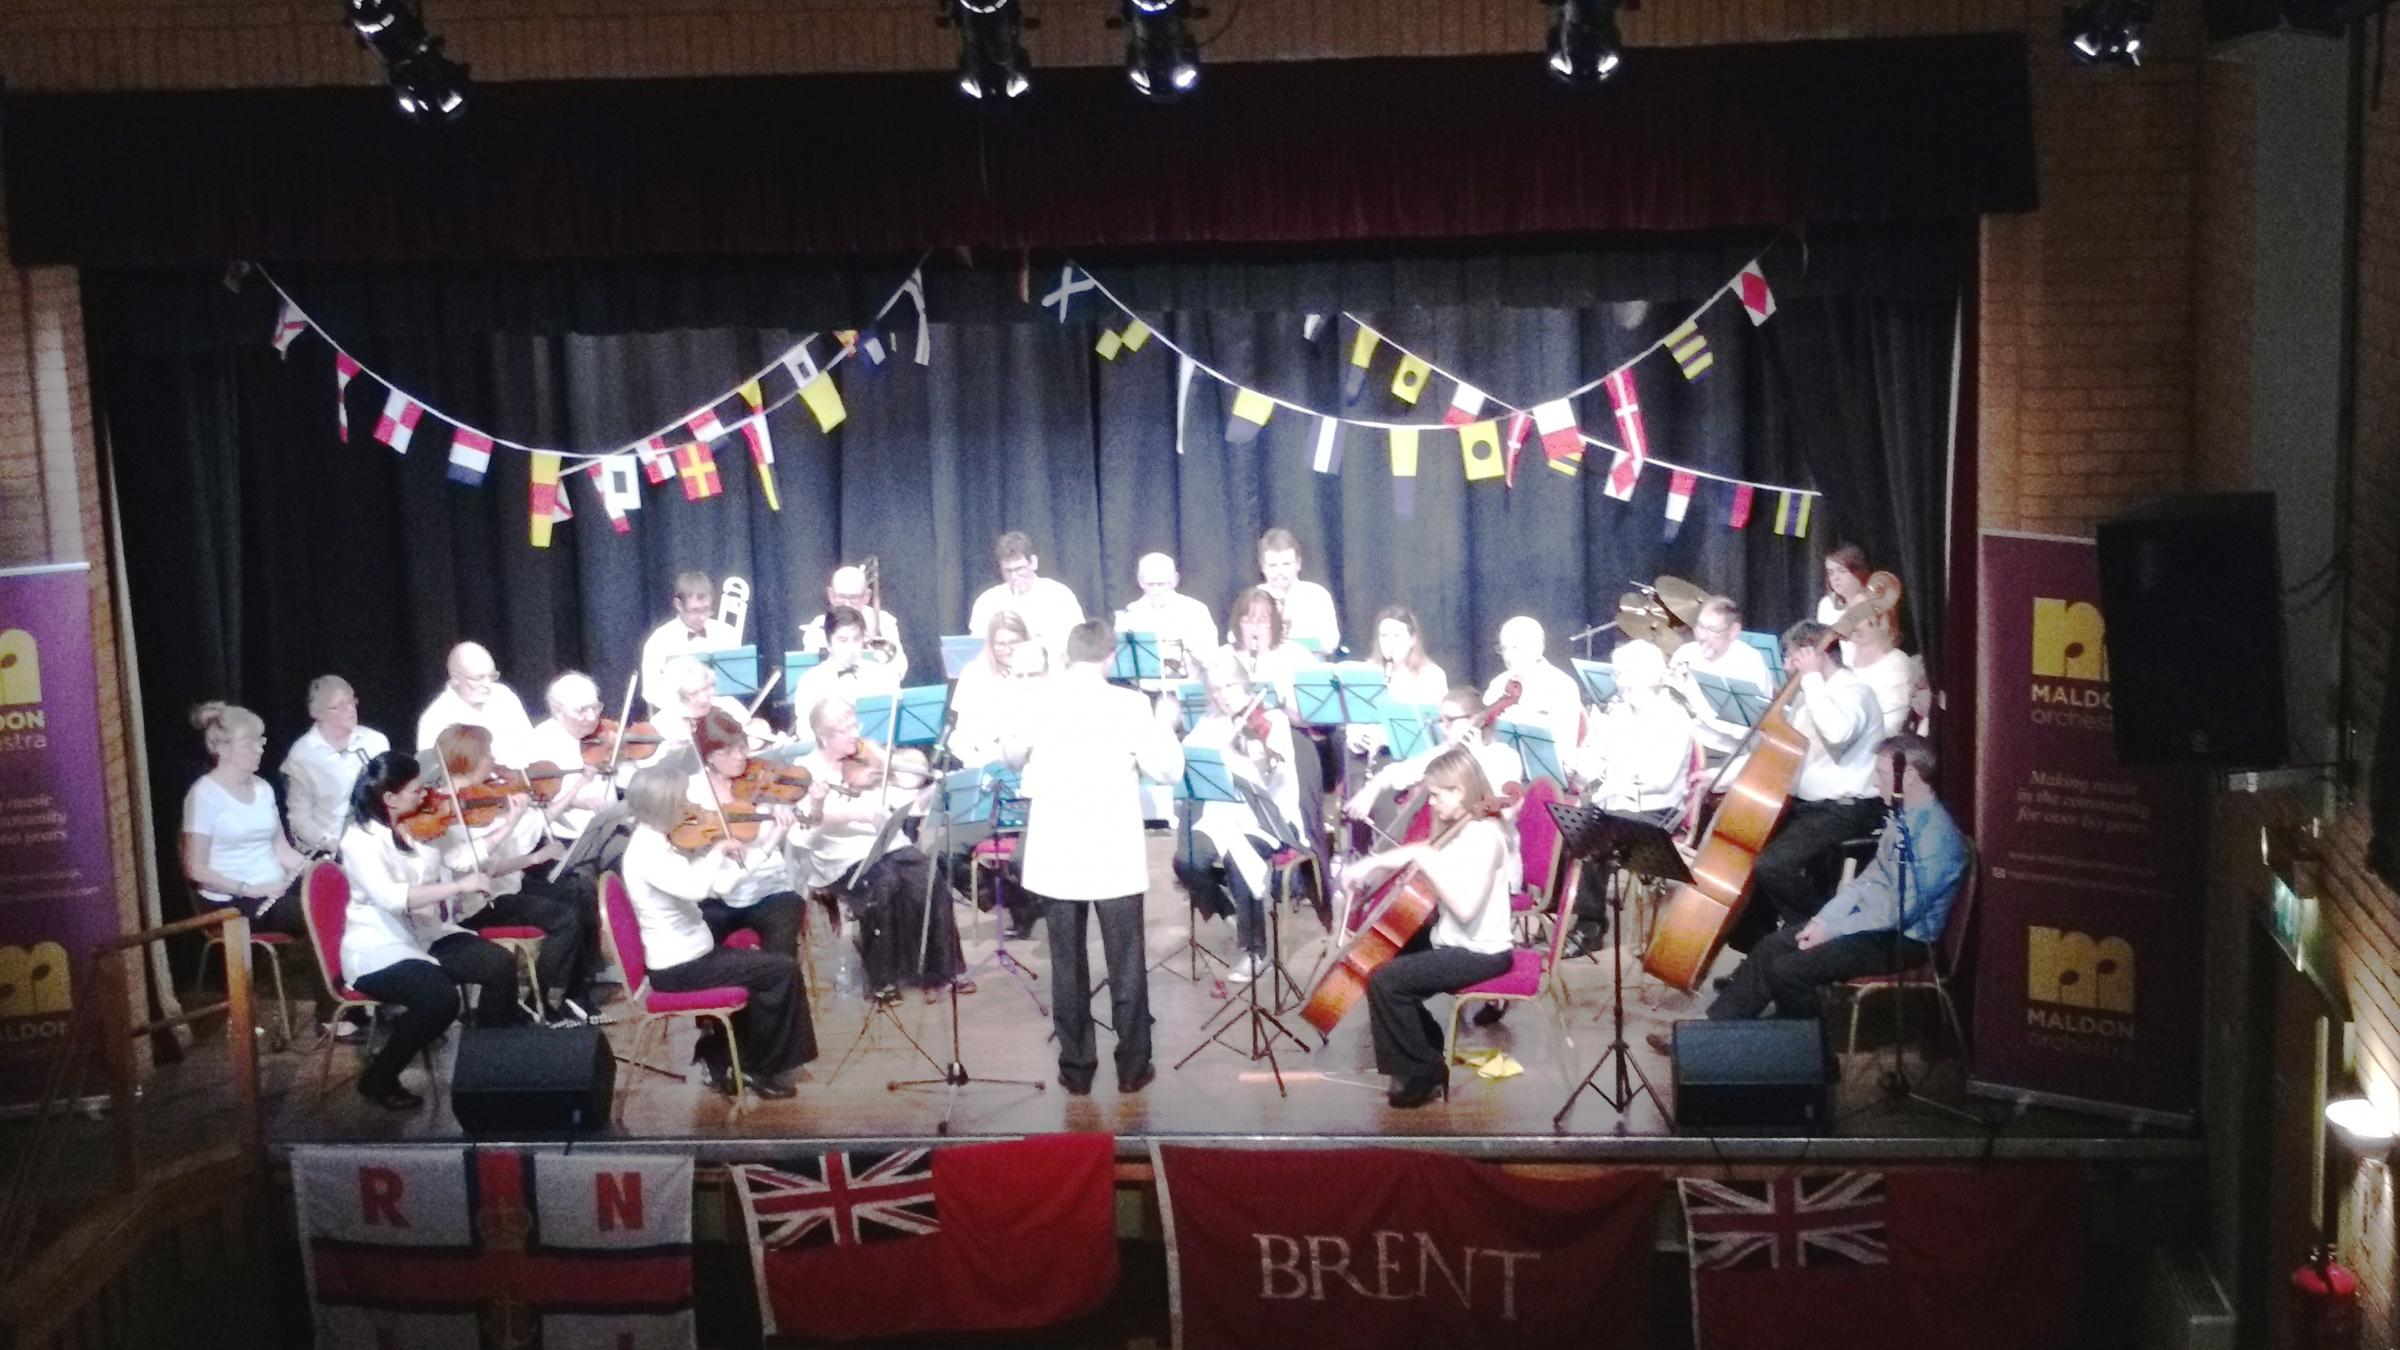 CONCERT: The Maldon Orchestra performing on Friday